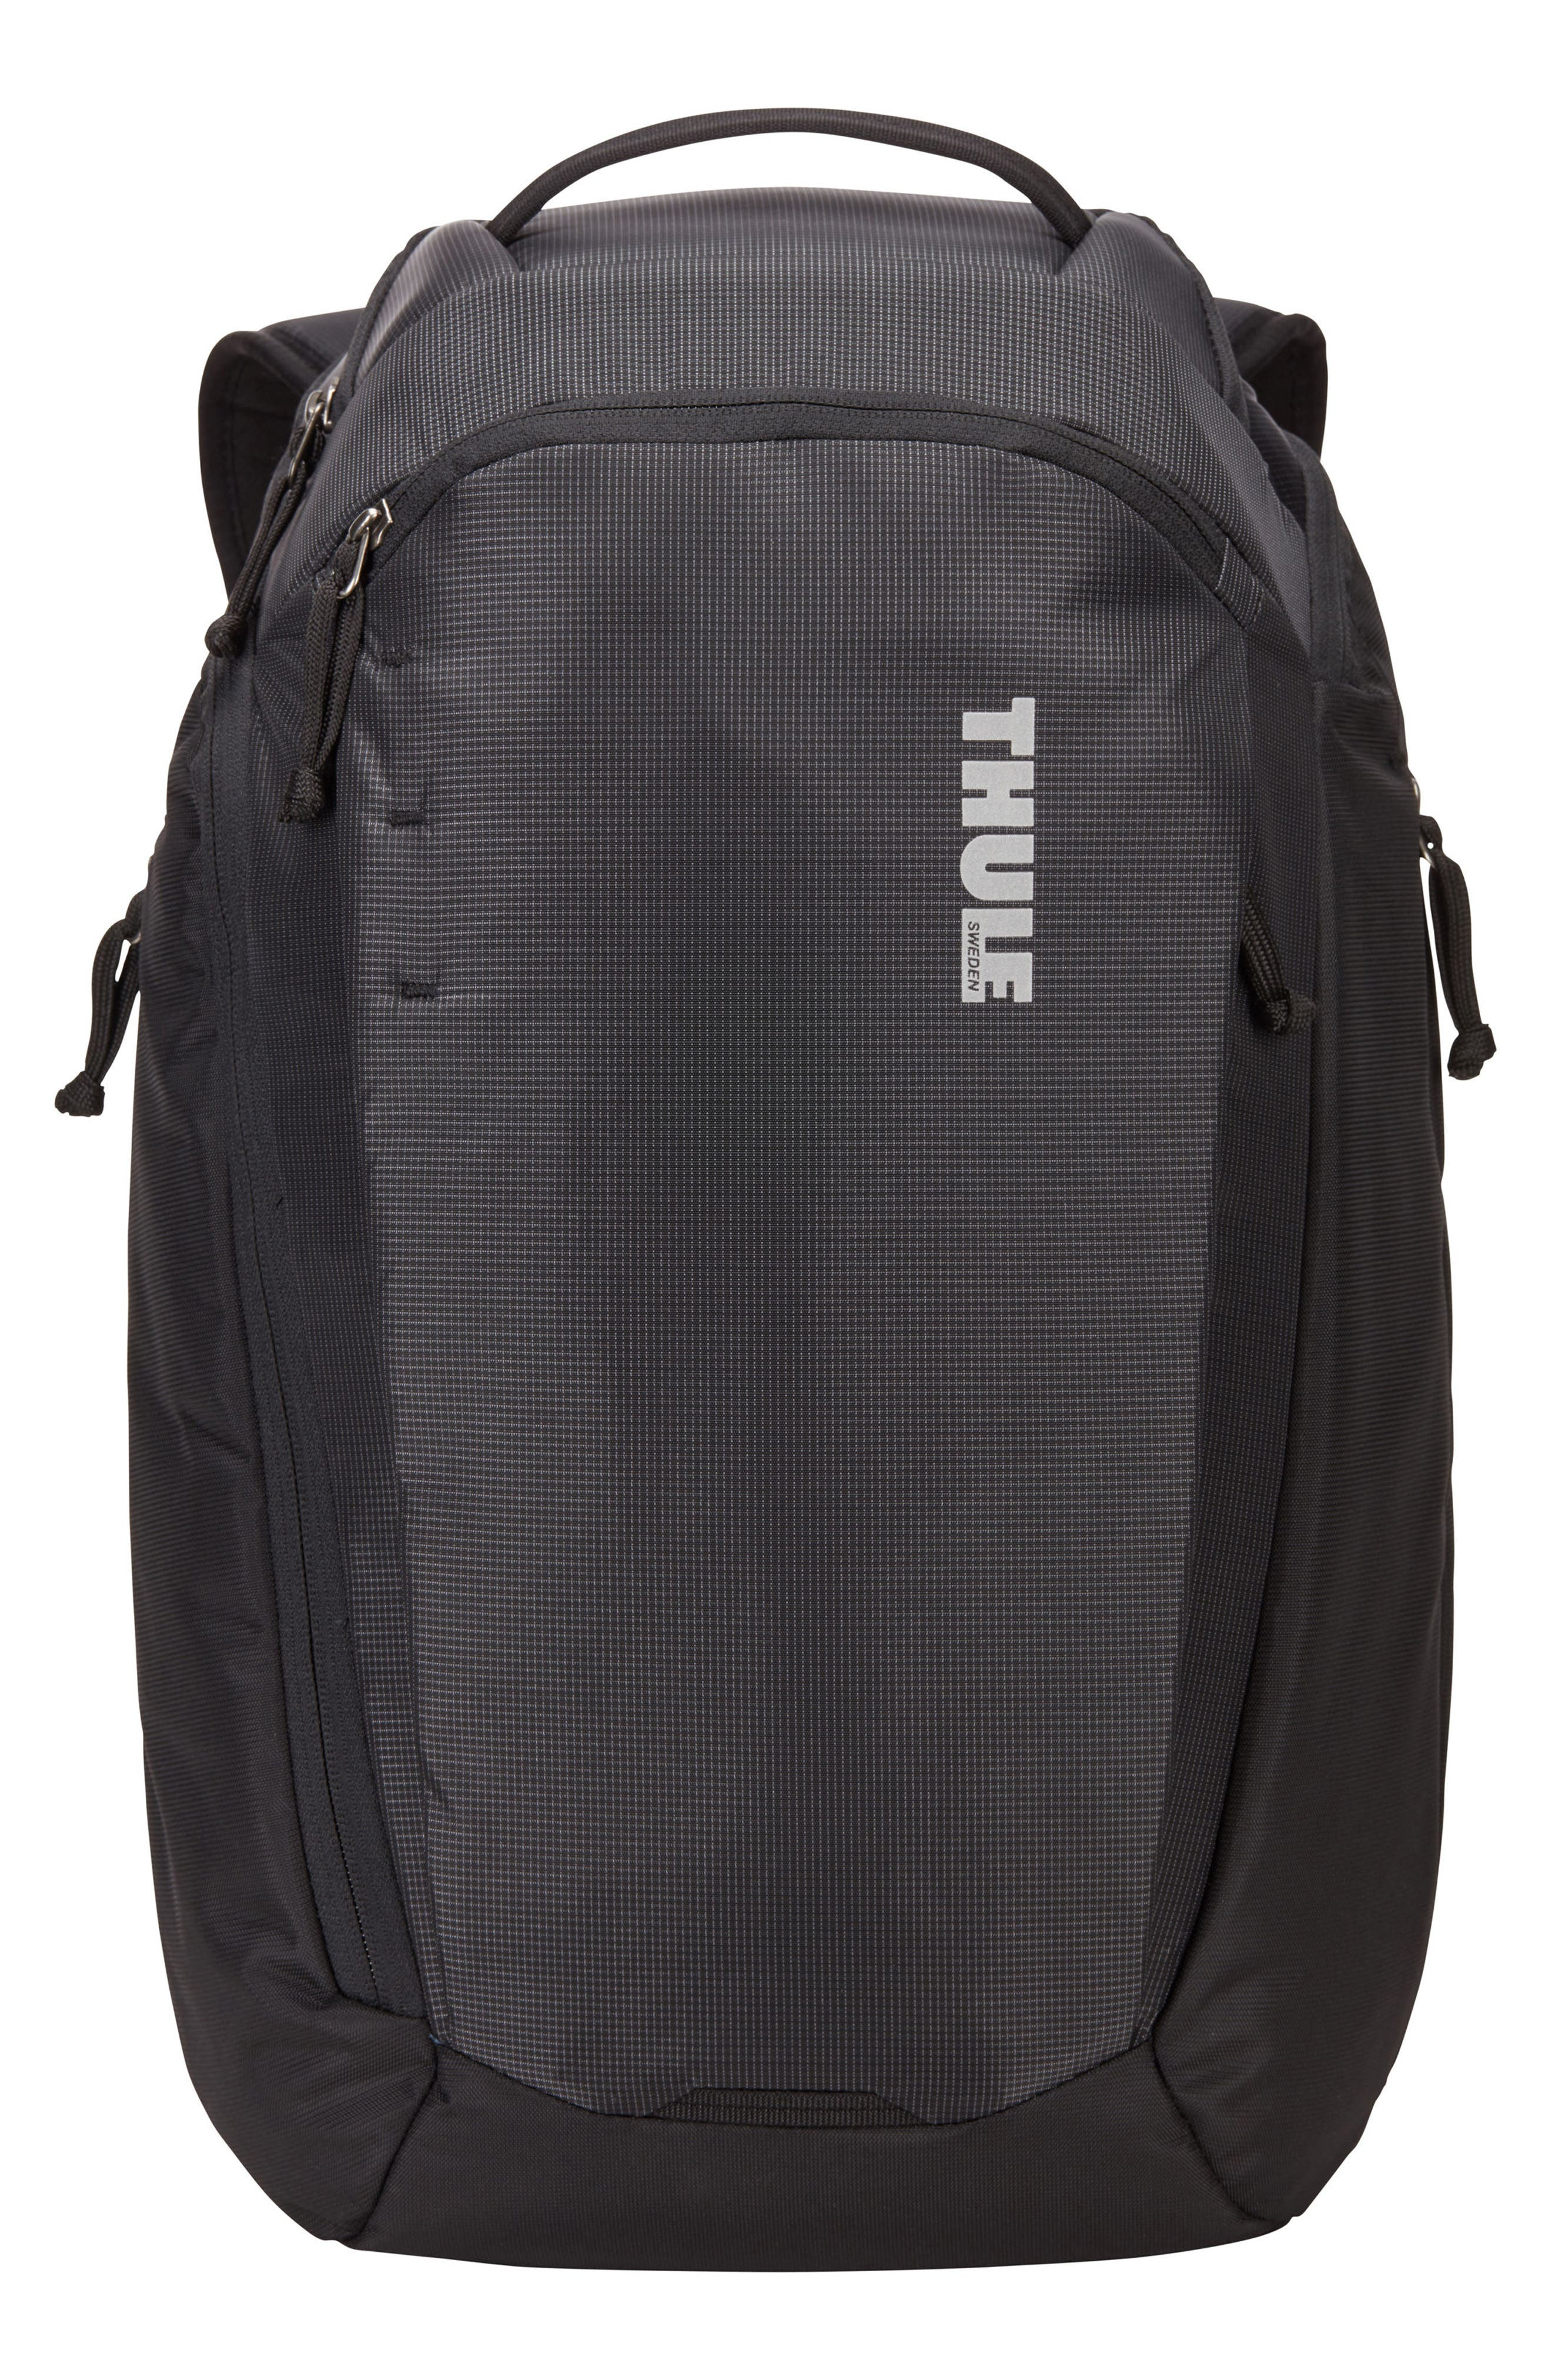 EnRoute Backpack,                             Main thumbnail 1, color,                             BLACK